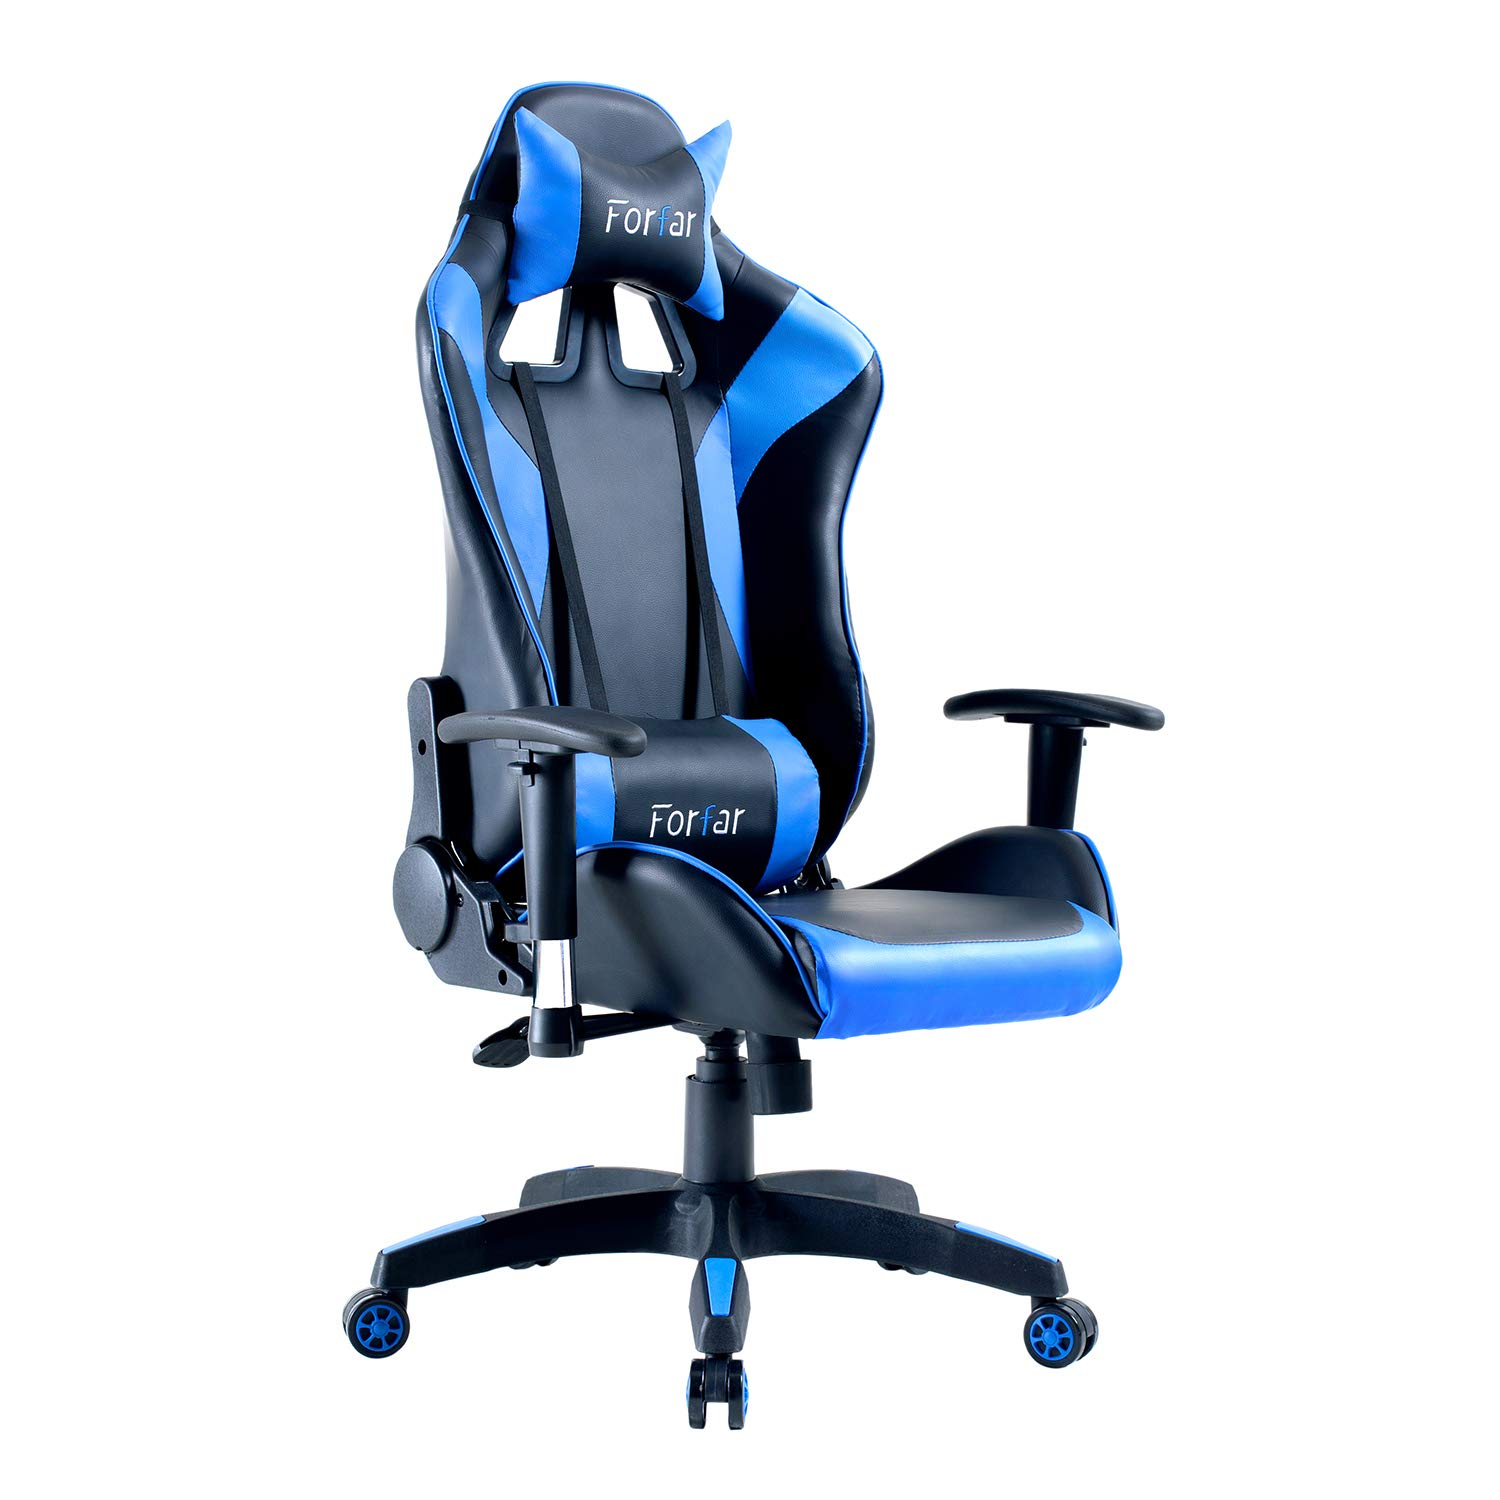 Forfar Gaming Chair Racing Office Computer Game Chair Red Ergonomic Backrest and Seat Height Adjustment Recliner Swivel Rocker with Headrest and Lumbar Pillow E-Sports Chair Blue Black